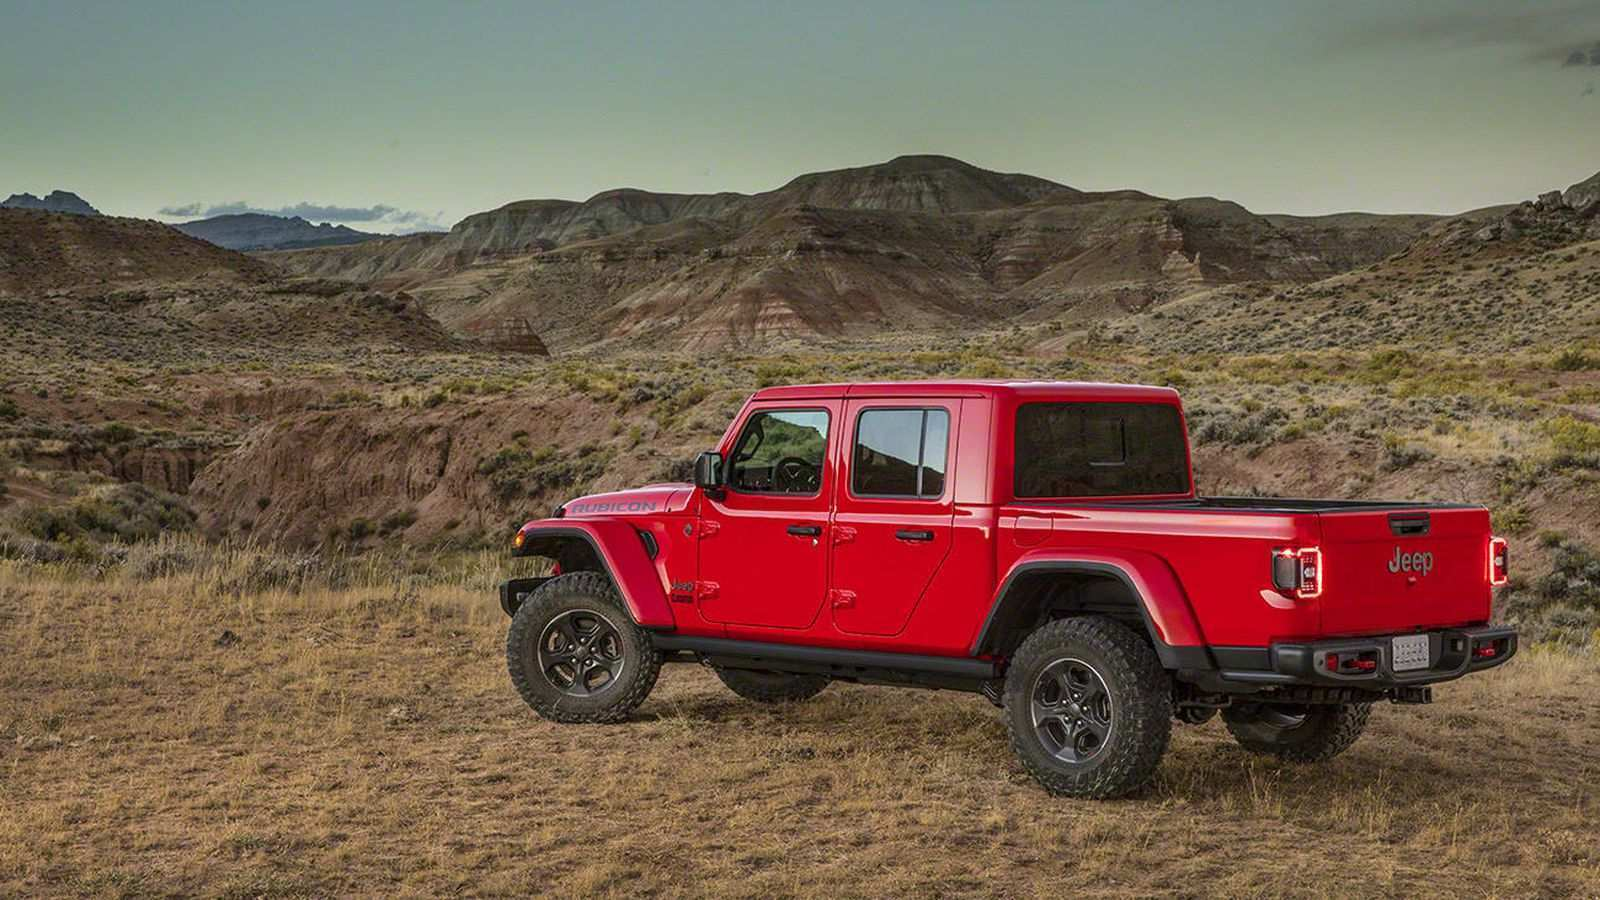 79 All New 2020 Jeep Pickup Truck Images for 2020 Jeep Pickup Truck